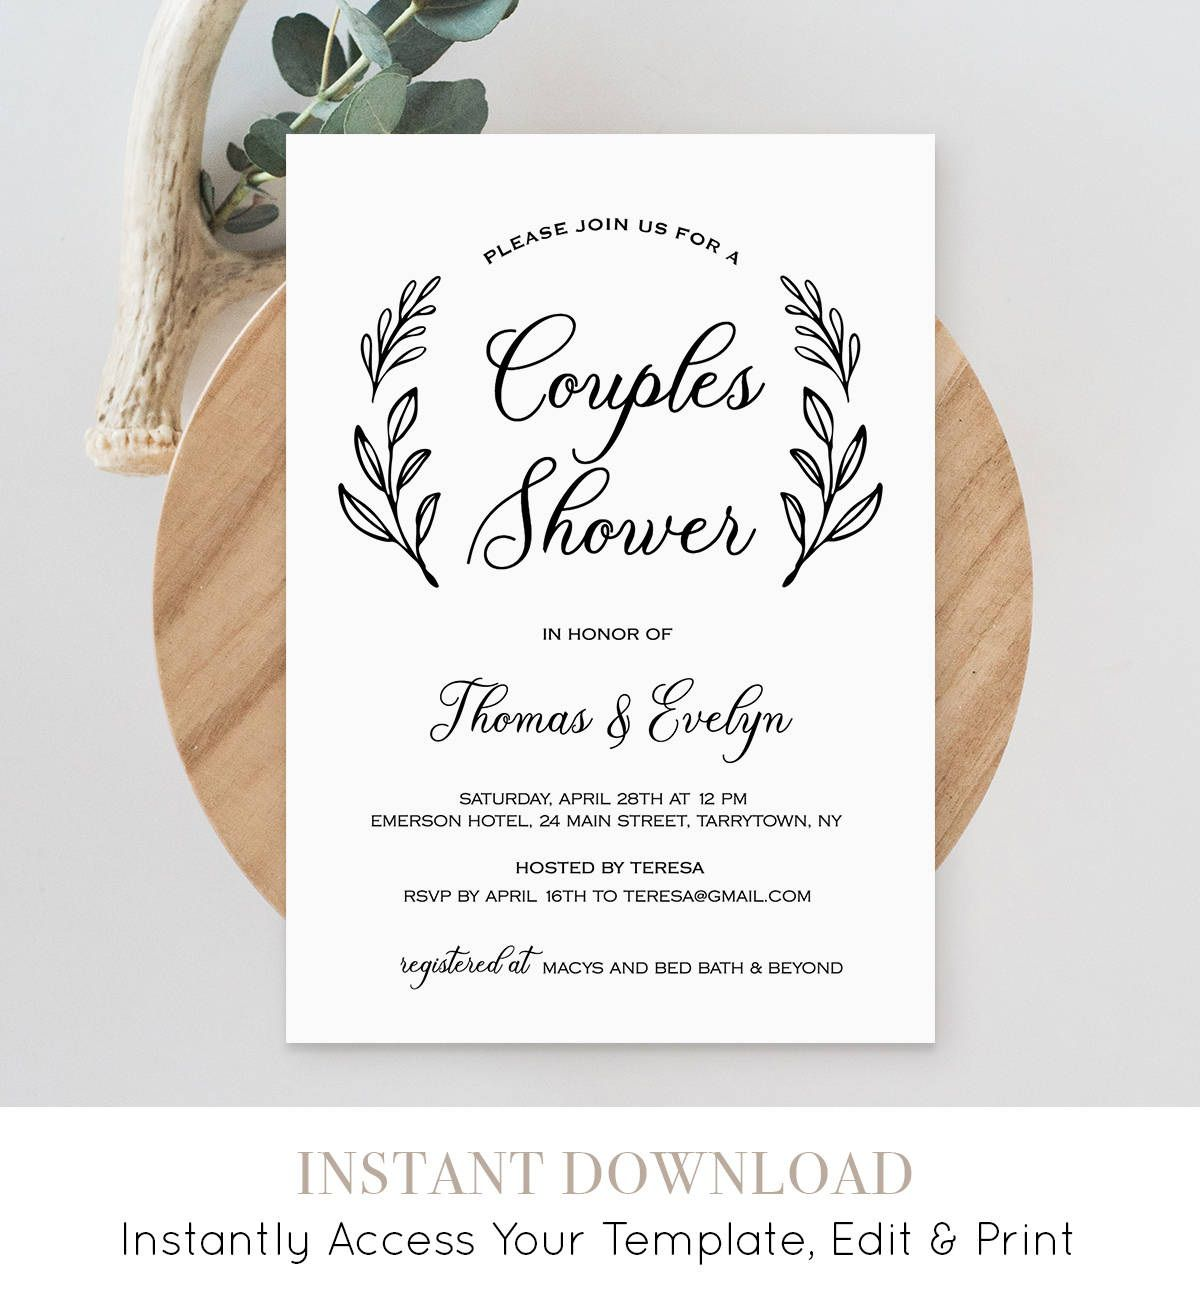 005 Amazing Free Couple Shower Invitation Template Download Picture Full